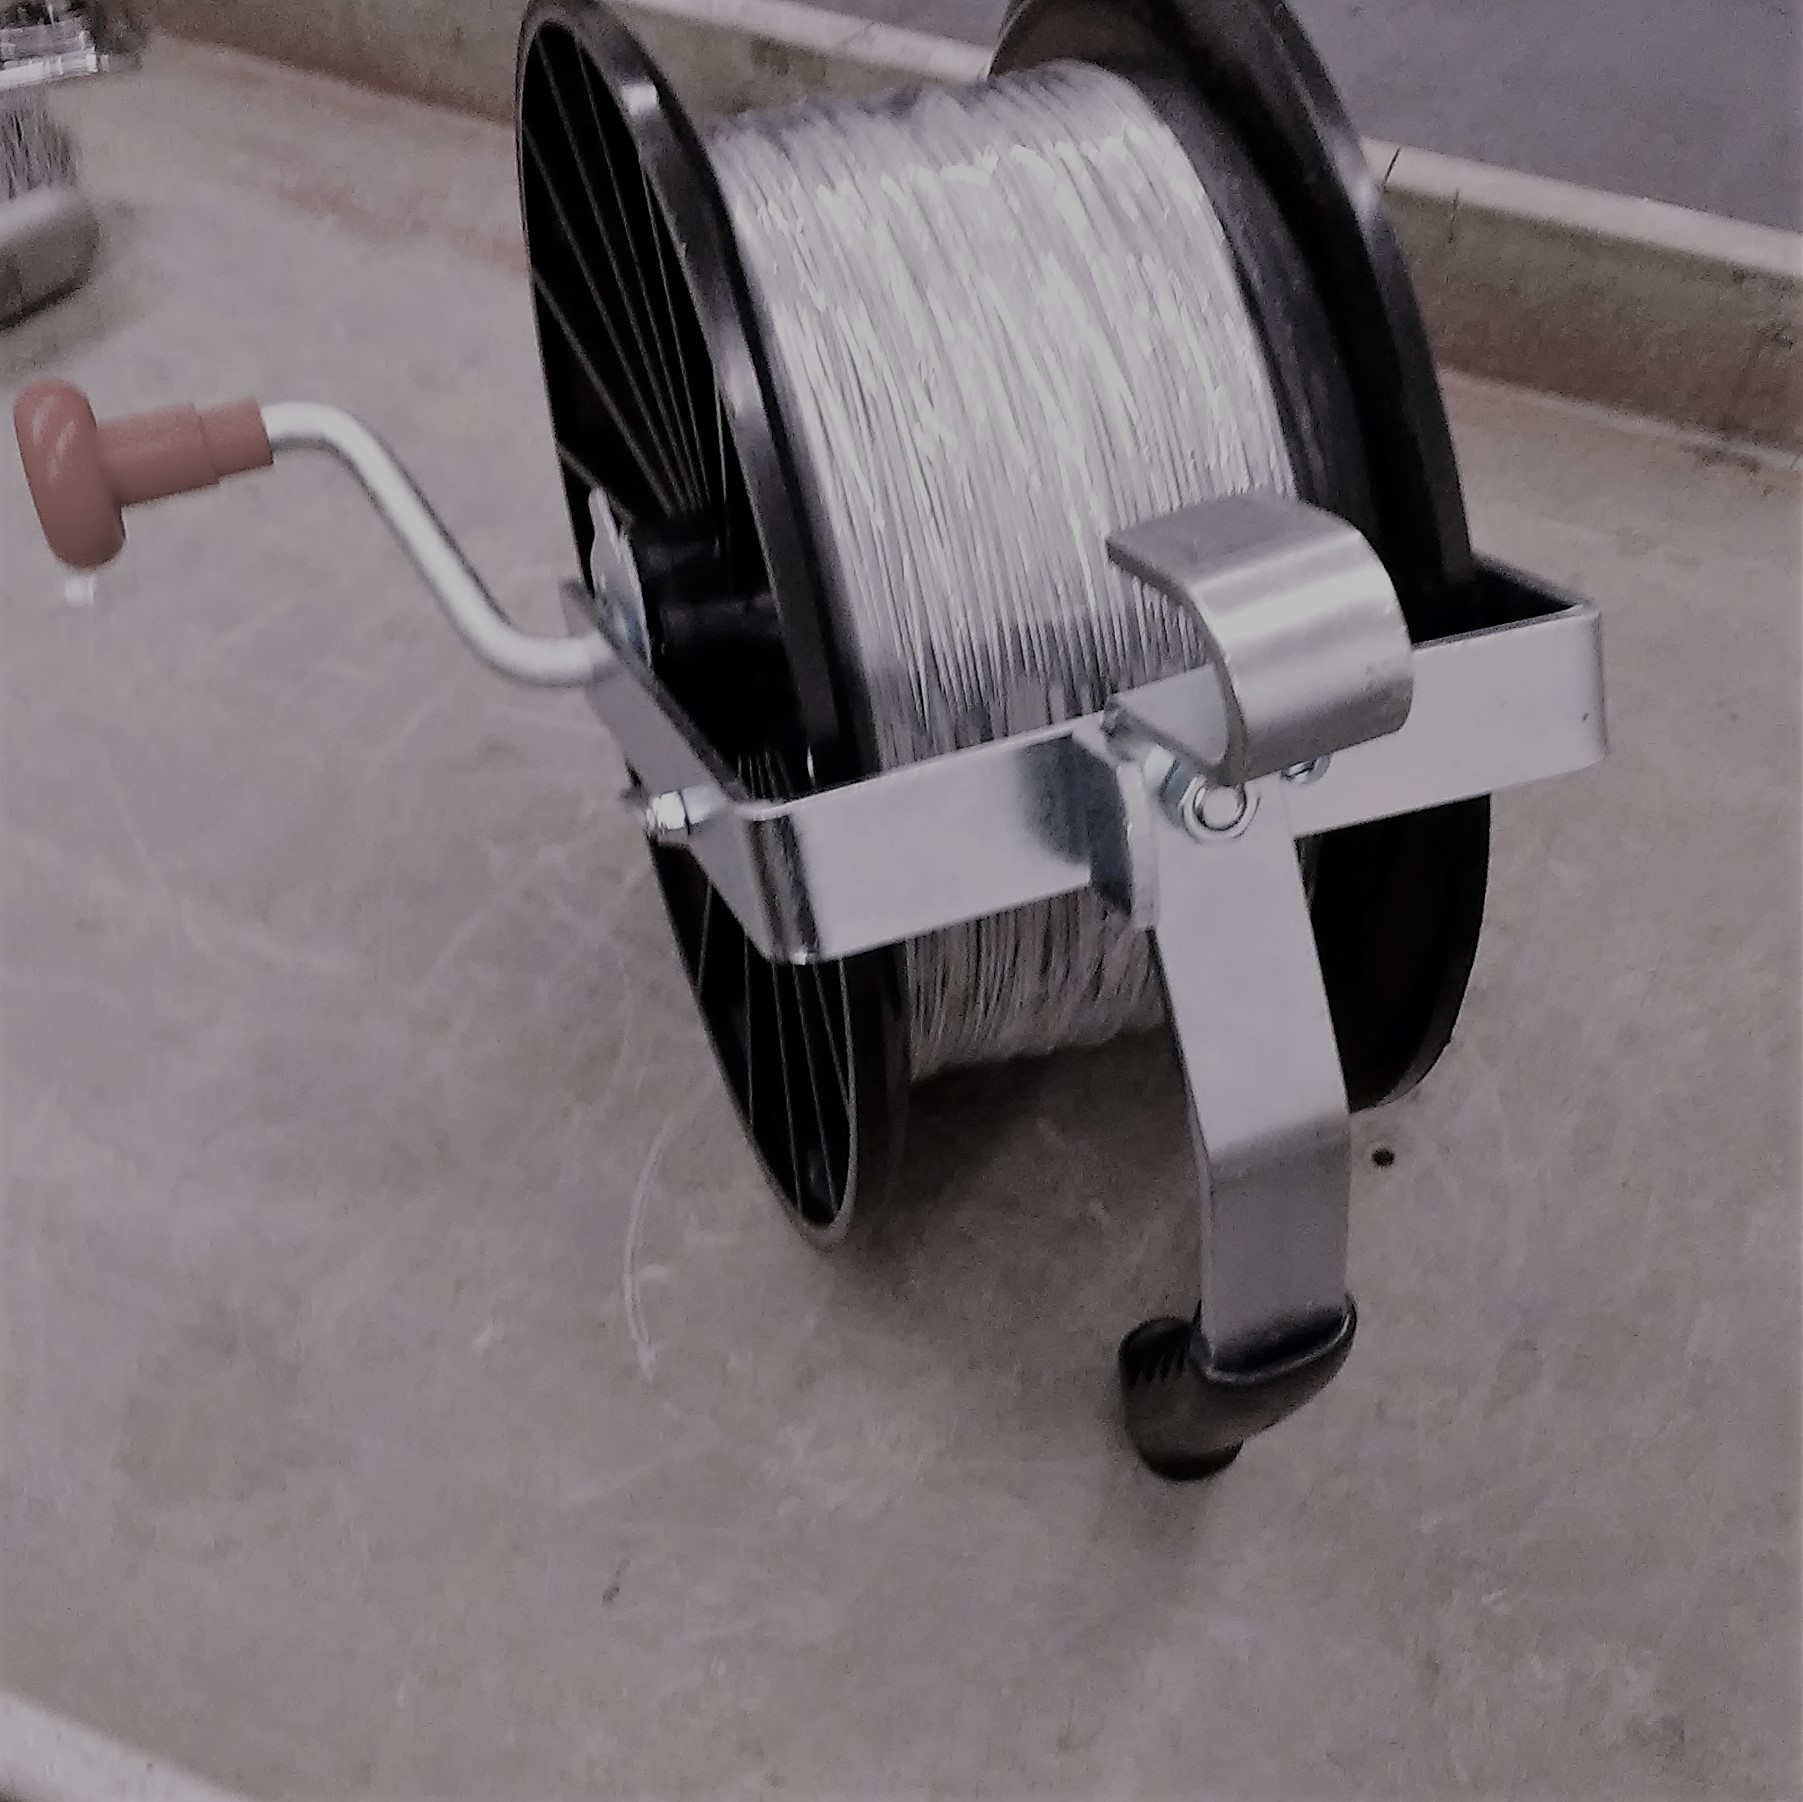 19-Strand Cable w/ Reel